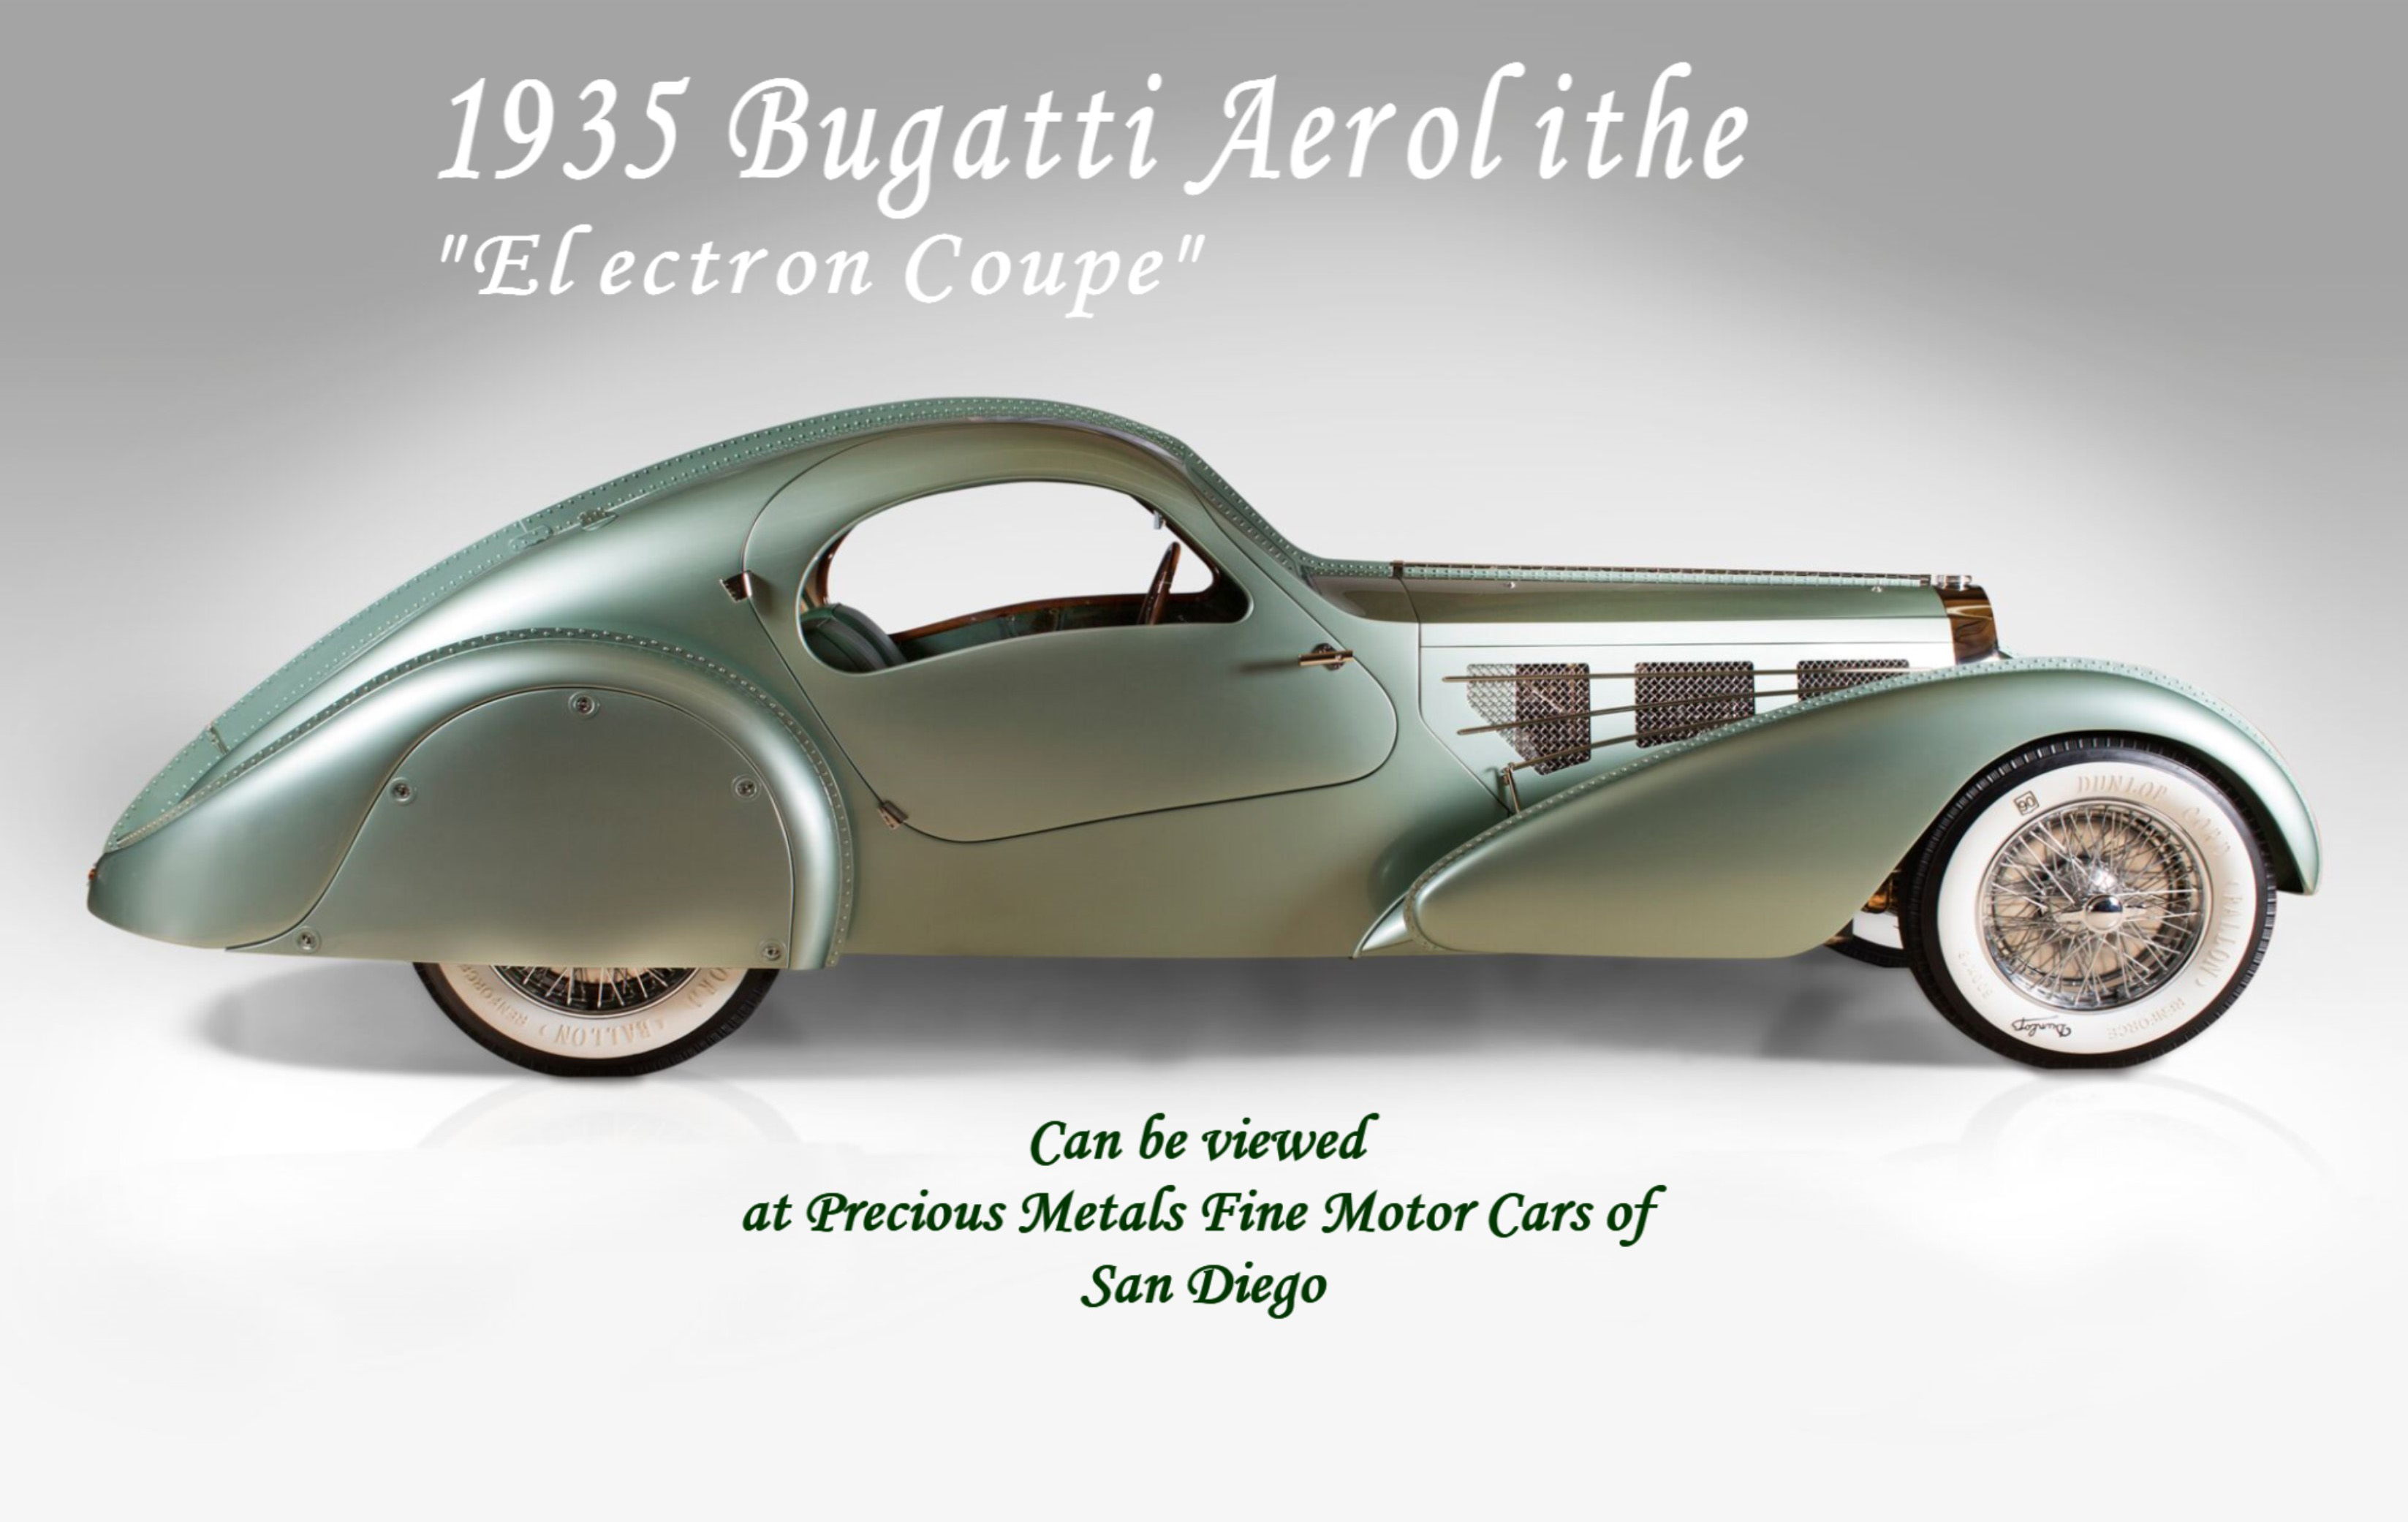 1935 Bugatti Aerolithe Electron Coupe Proudly Offered by Precious Metals Fine Motor Cars of San Diego